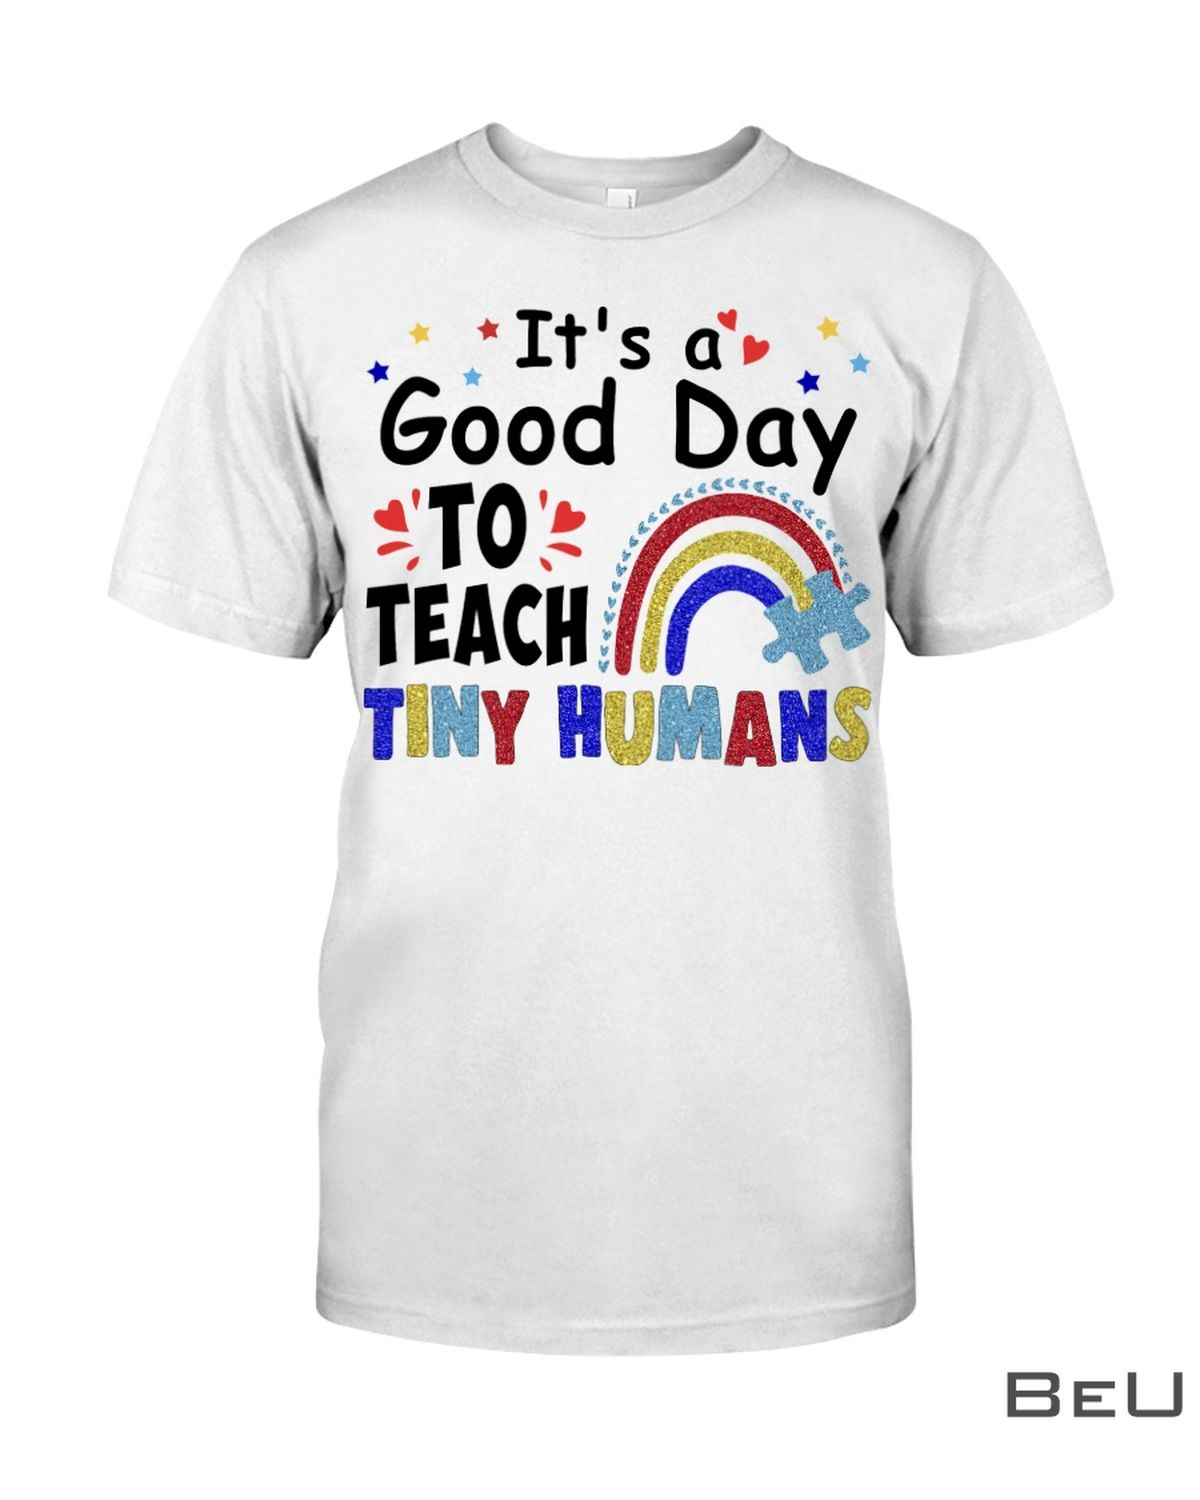 It's A Good Day To Teach Tiny Humans Shirt